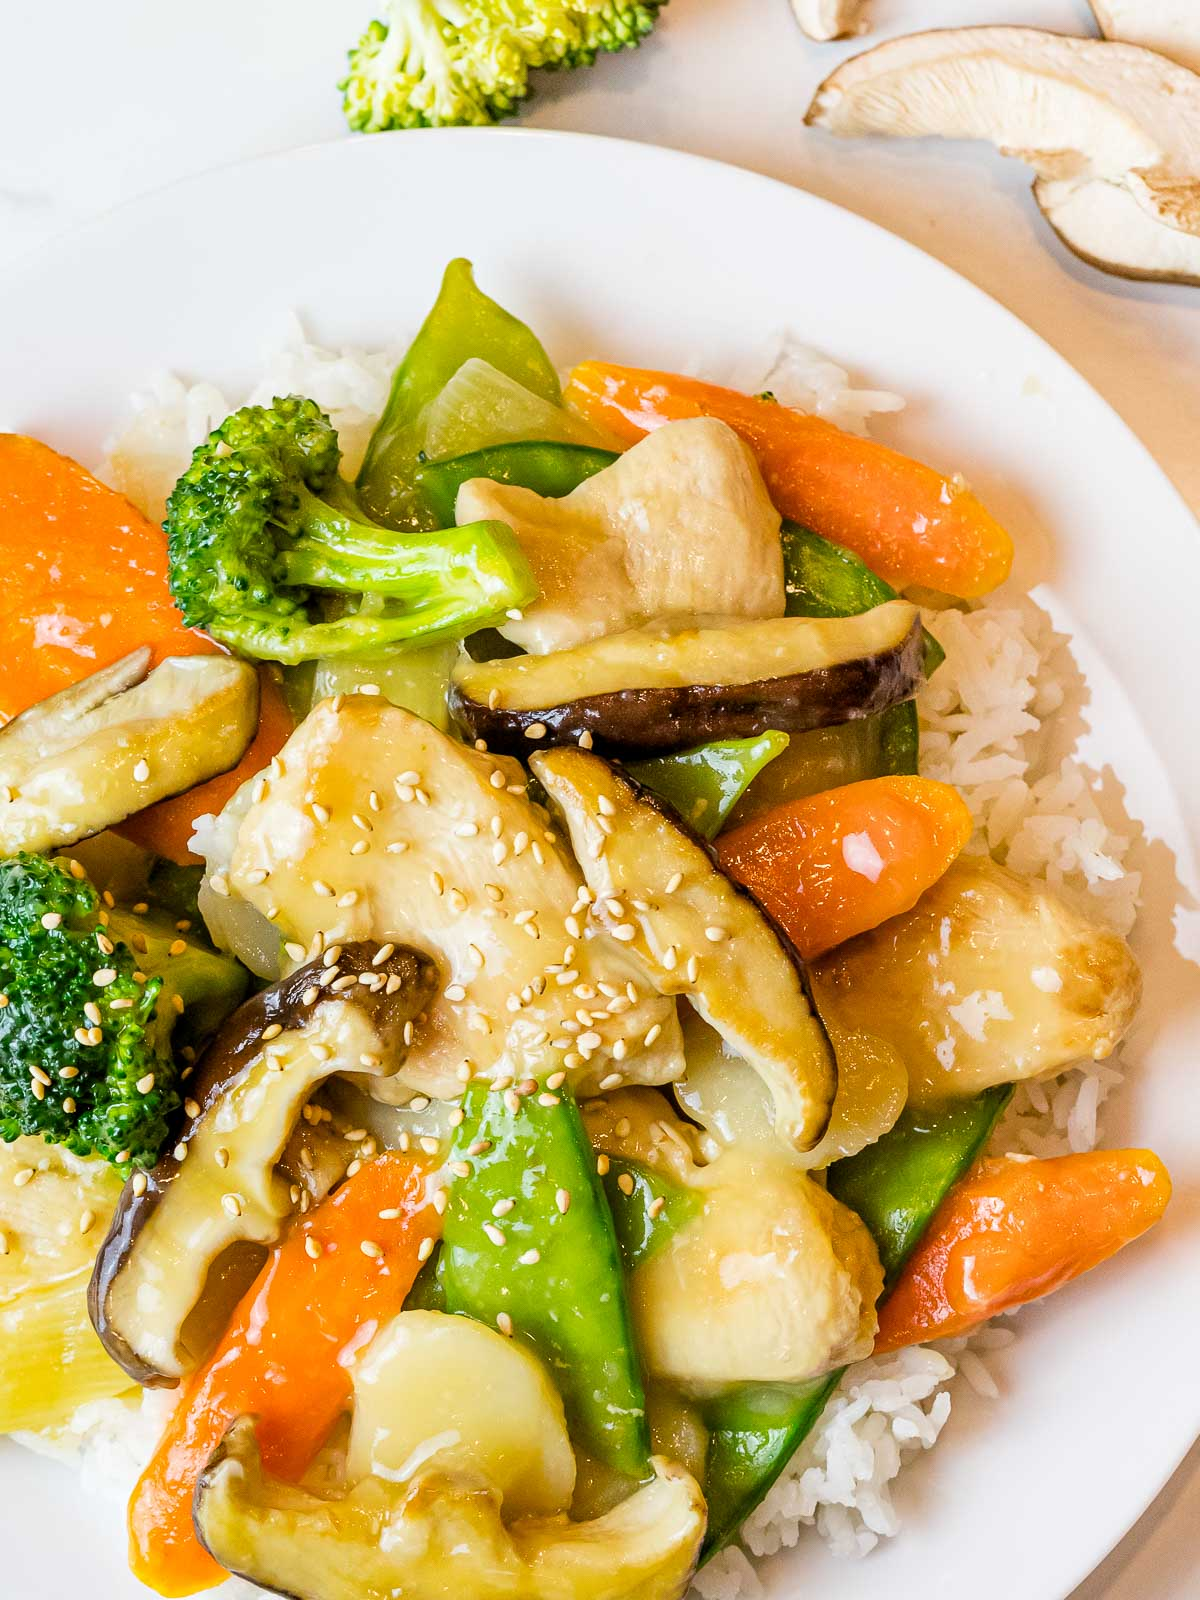 Chinese mushroom chicken stir fry with broccoli and carrots on a plate of rice